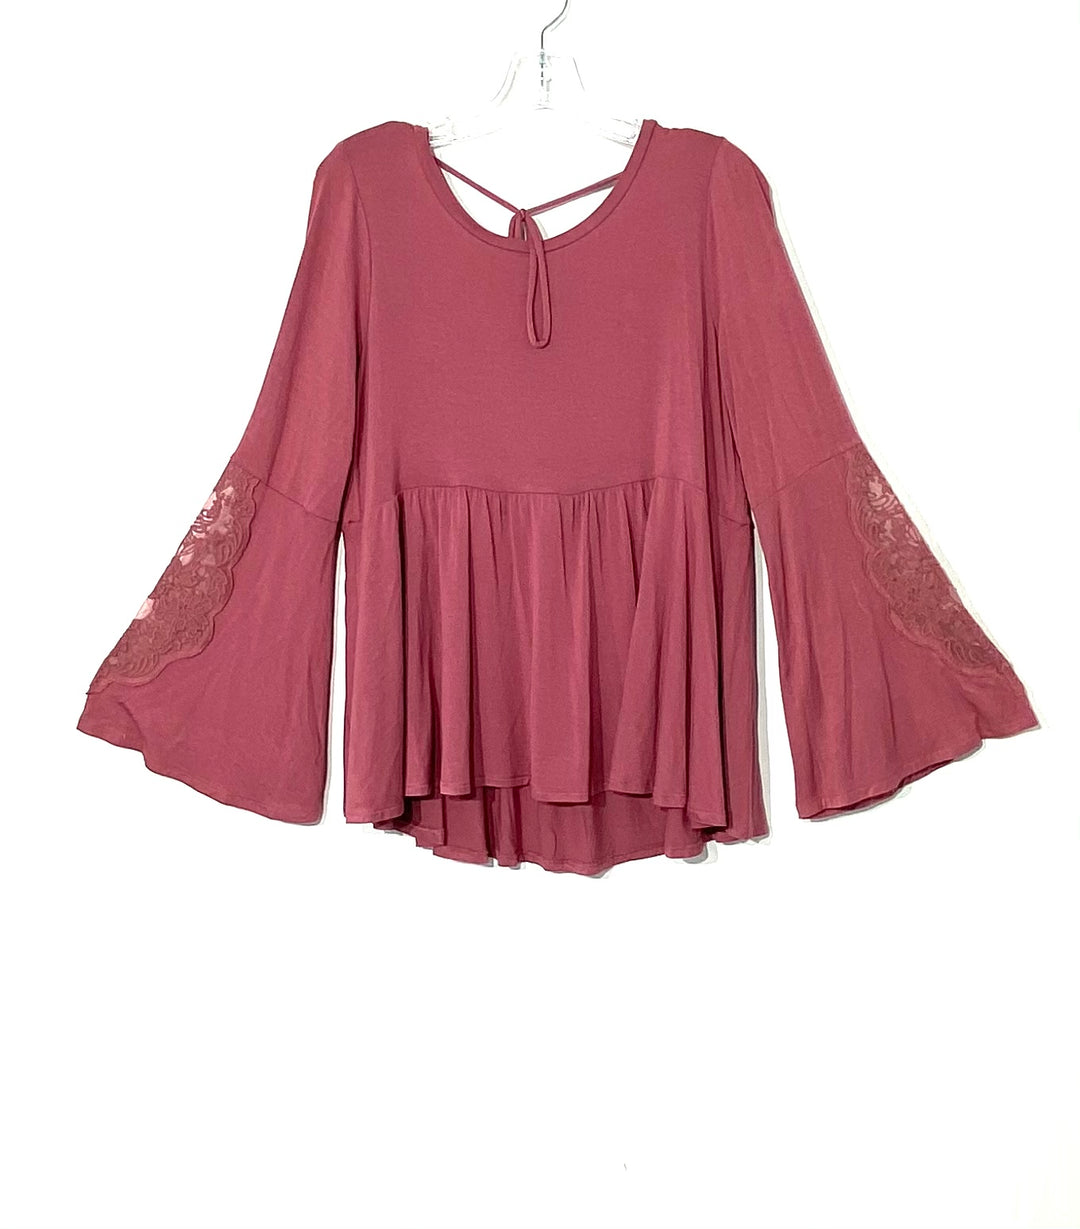 Primary Photo - BRAND: AMERICAN EAGLE <BR>STYLE: TOP LONG SLEEVE <BR>COLOR: MAUVE<BR>SIZE: L <BR>SKU: 262-26275-71202